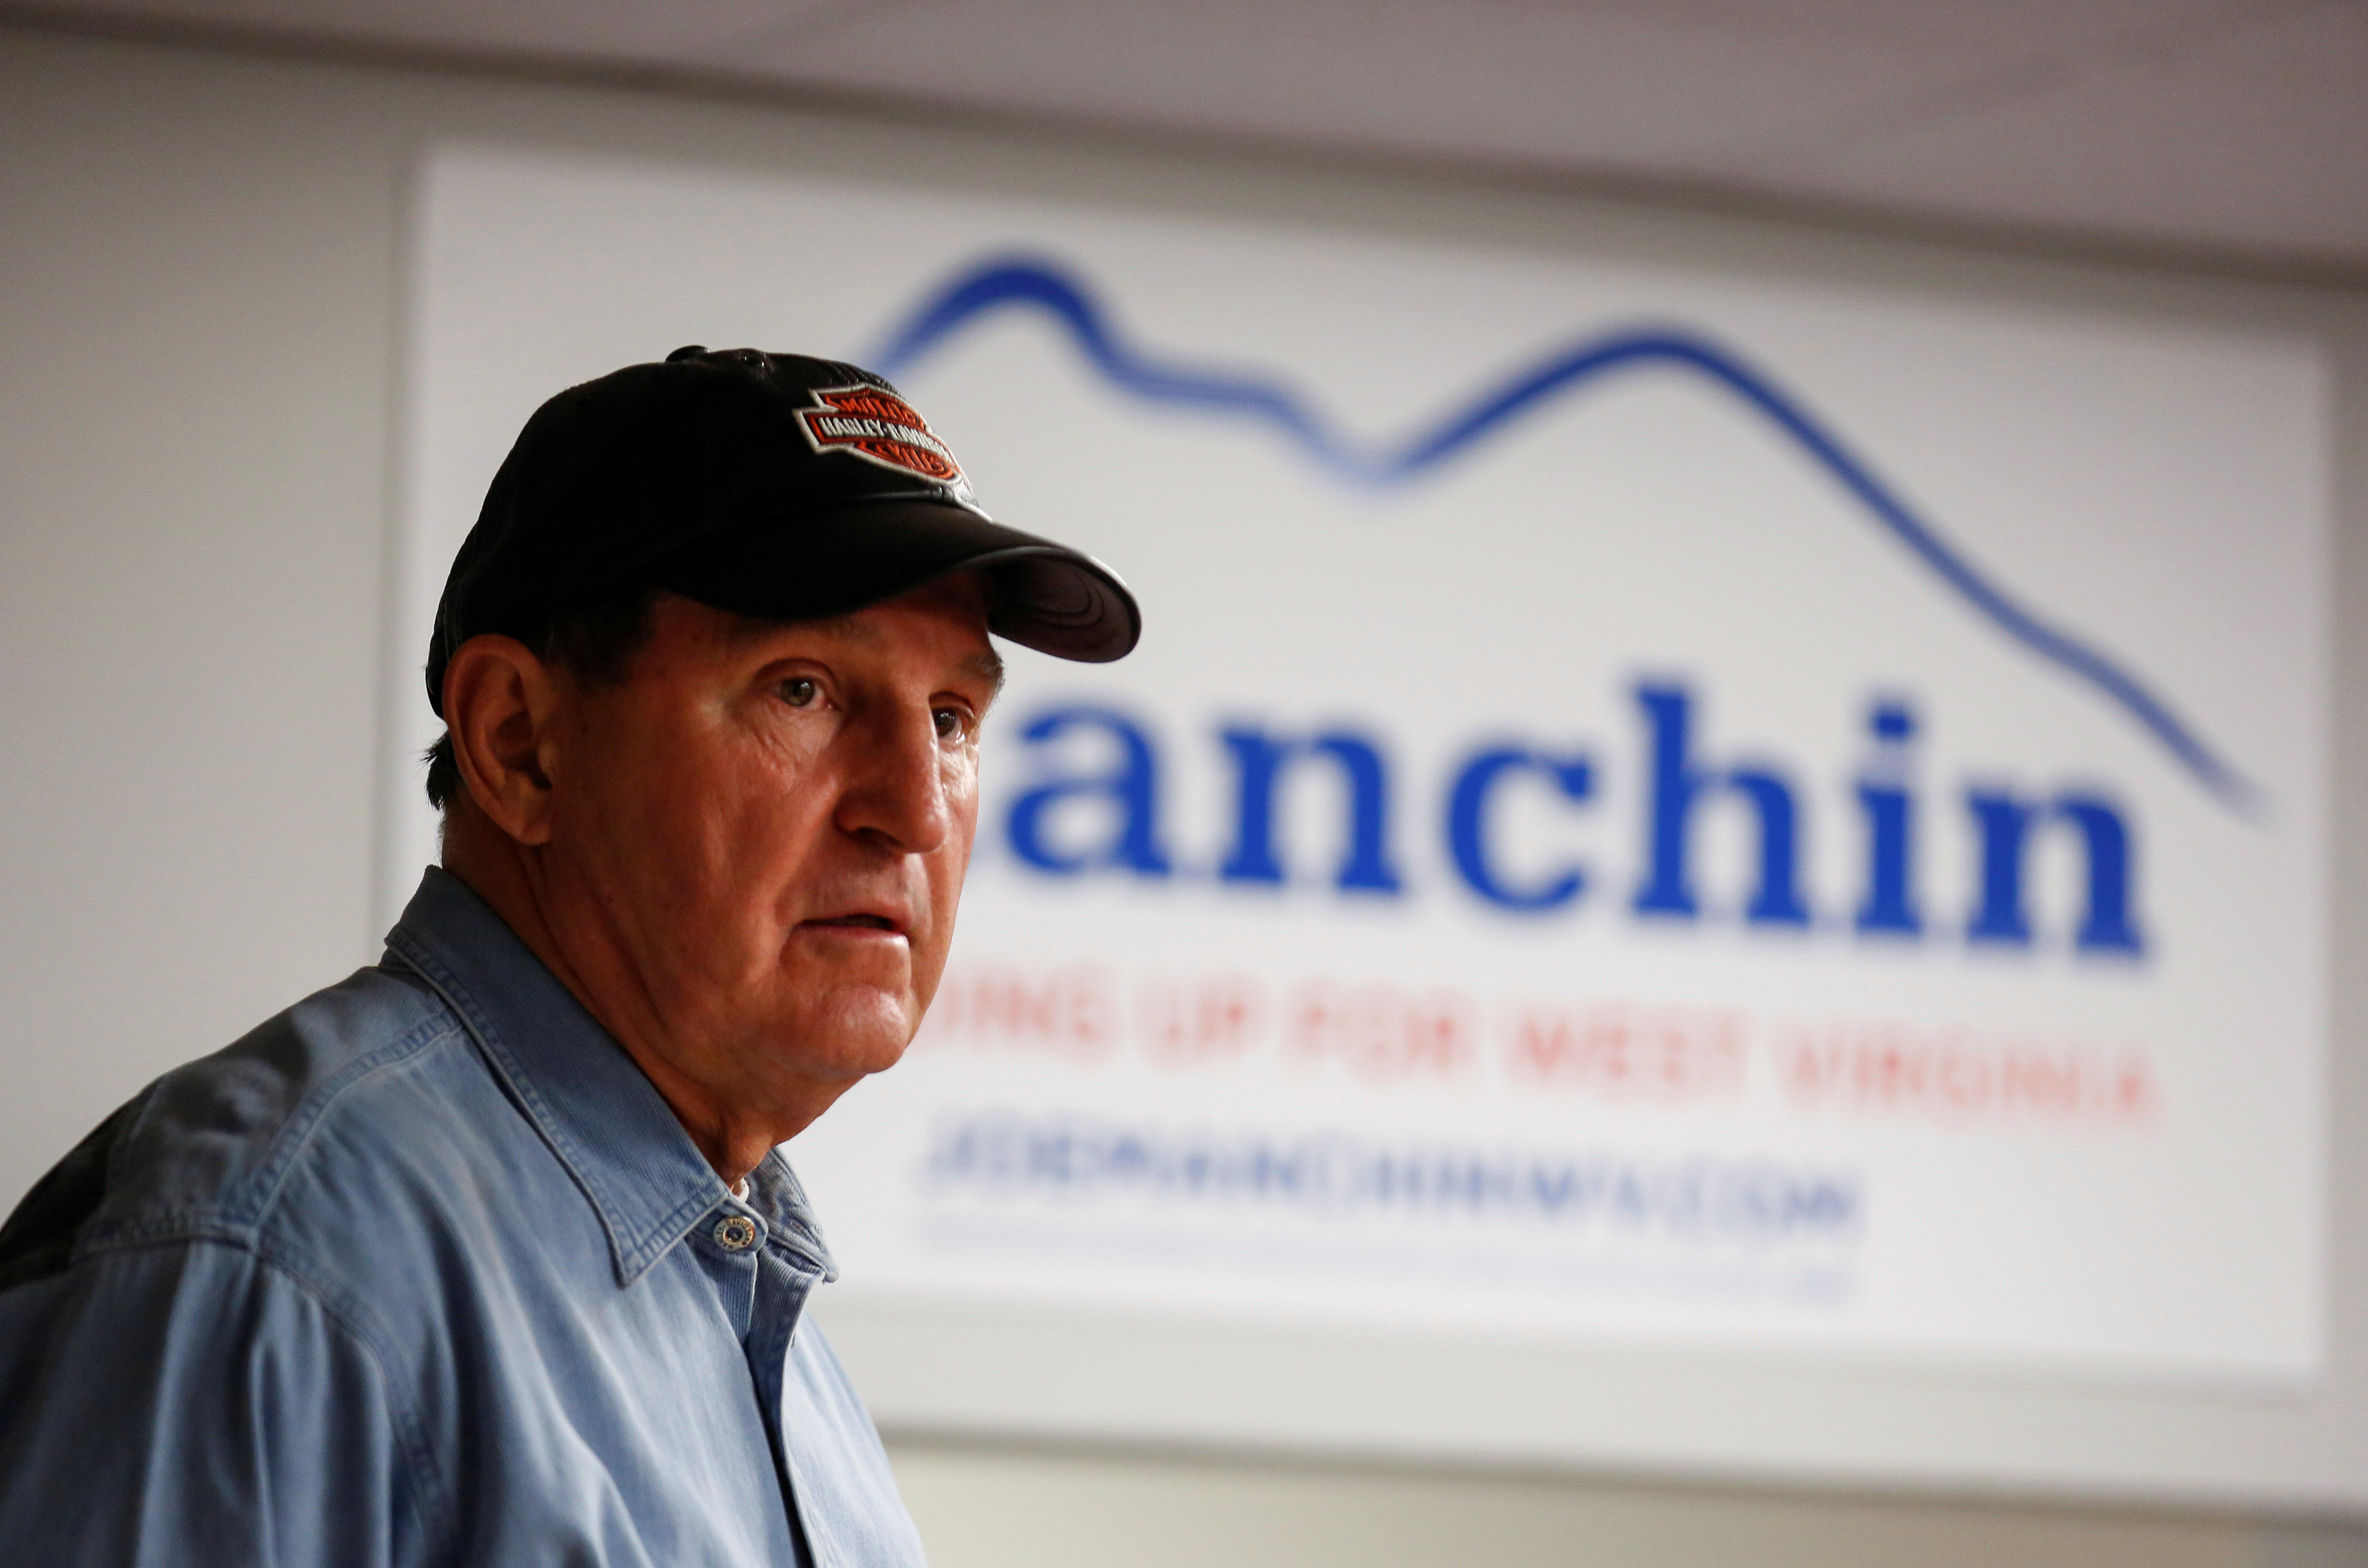 Senator Joe Manchin (D-WV) greets supporters after campaigning for the 2018 midterm elections at his headquarters in Charlestown, West Virginia